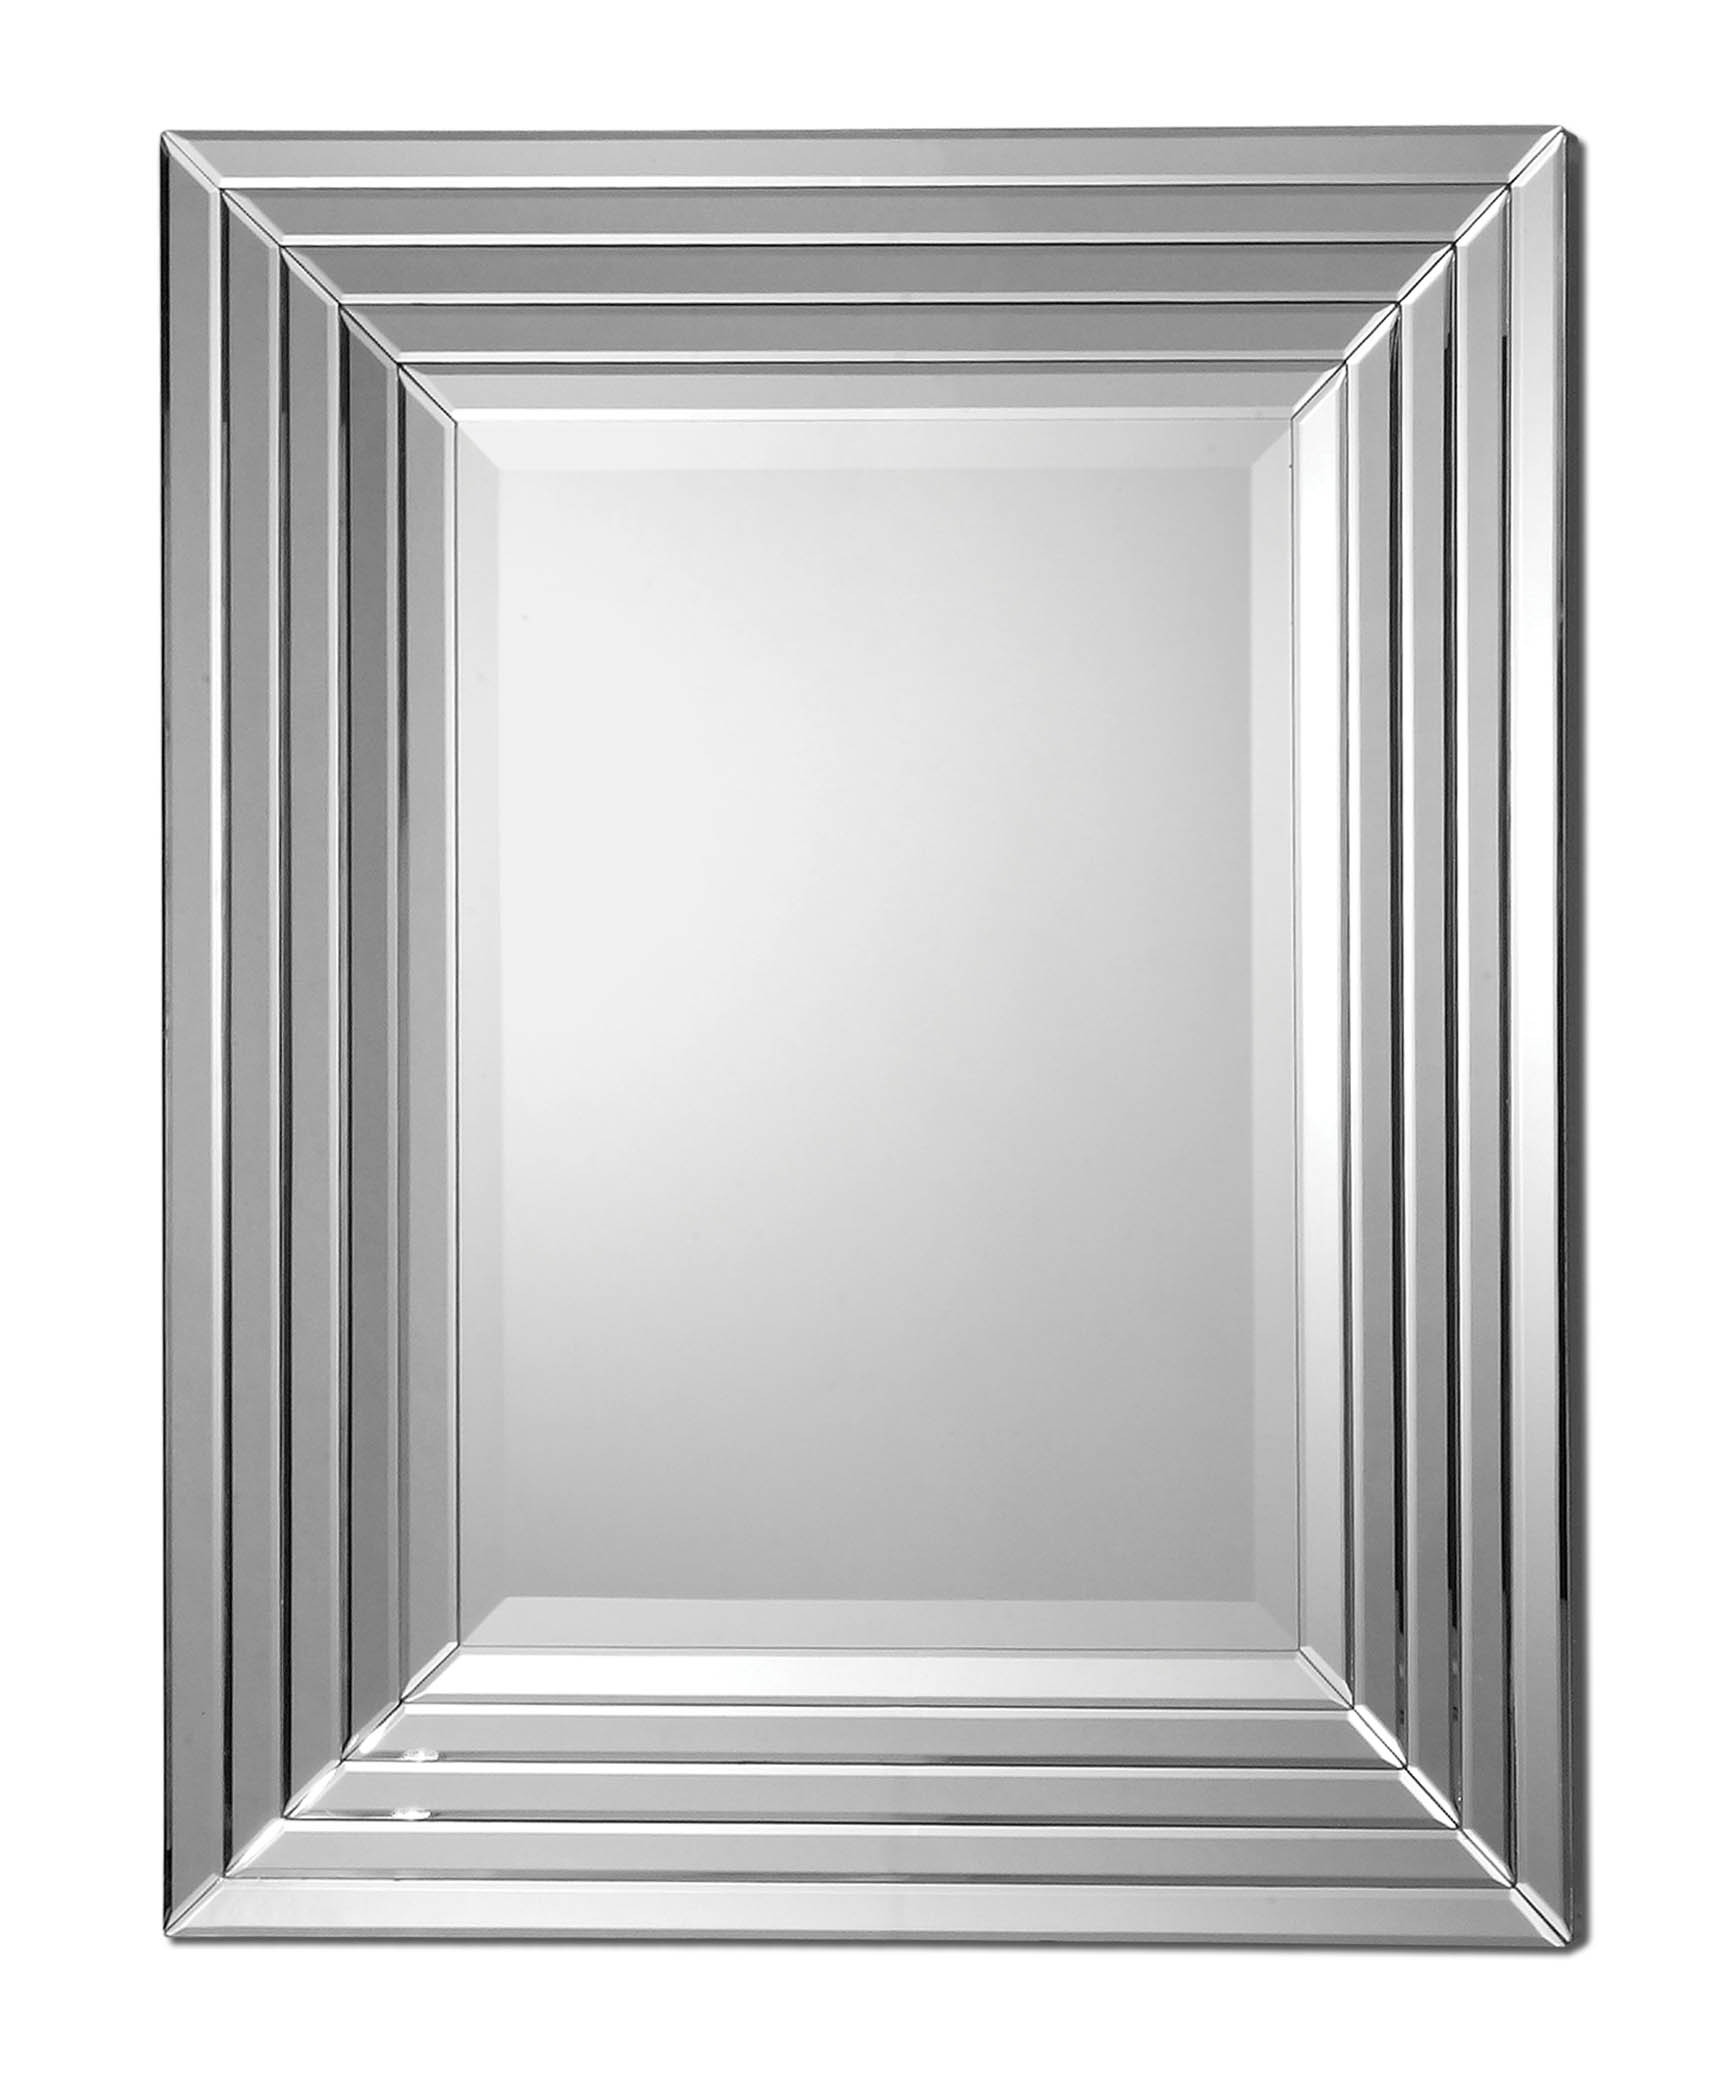 Art Frame Great Gats Art Frame Fine Art Prints Framed Pertaining To Deco Mirrors (View 9 of 15)